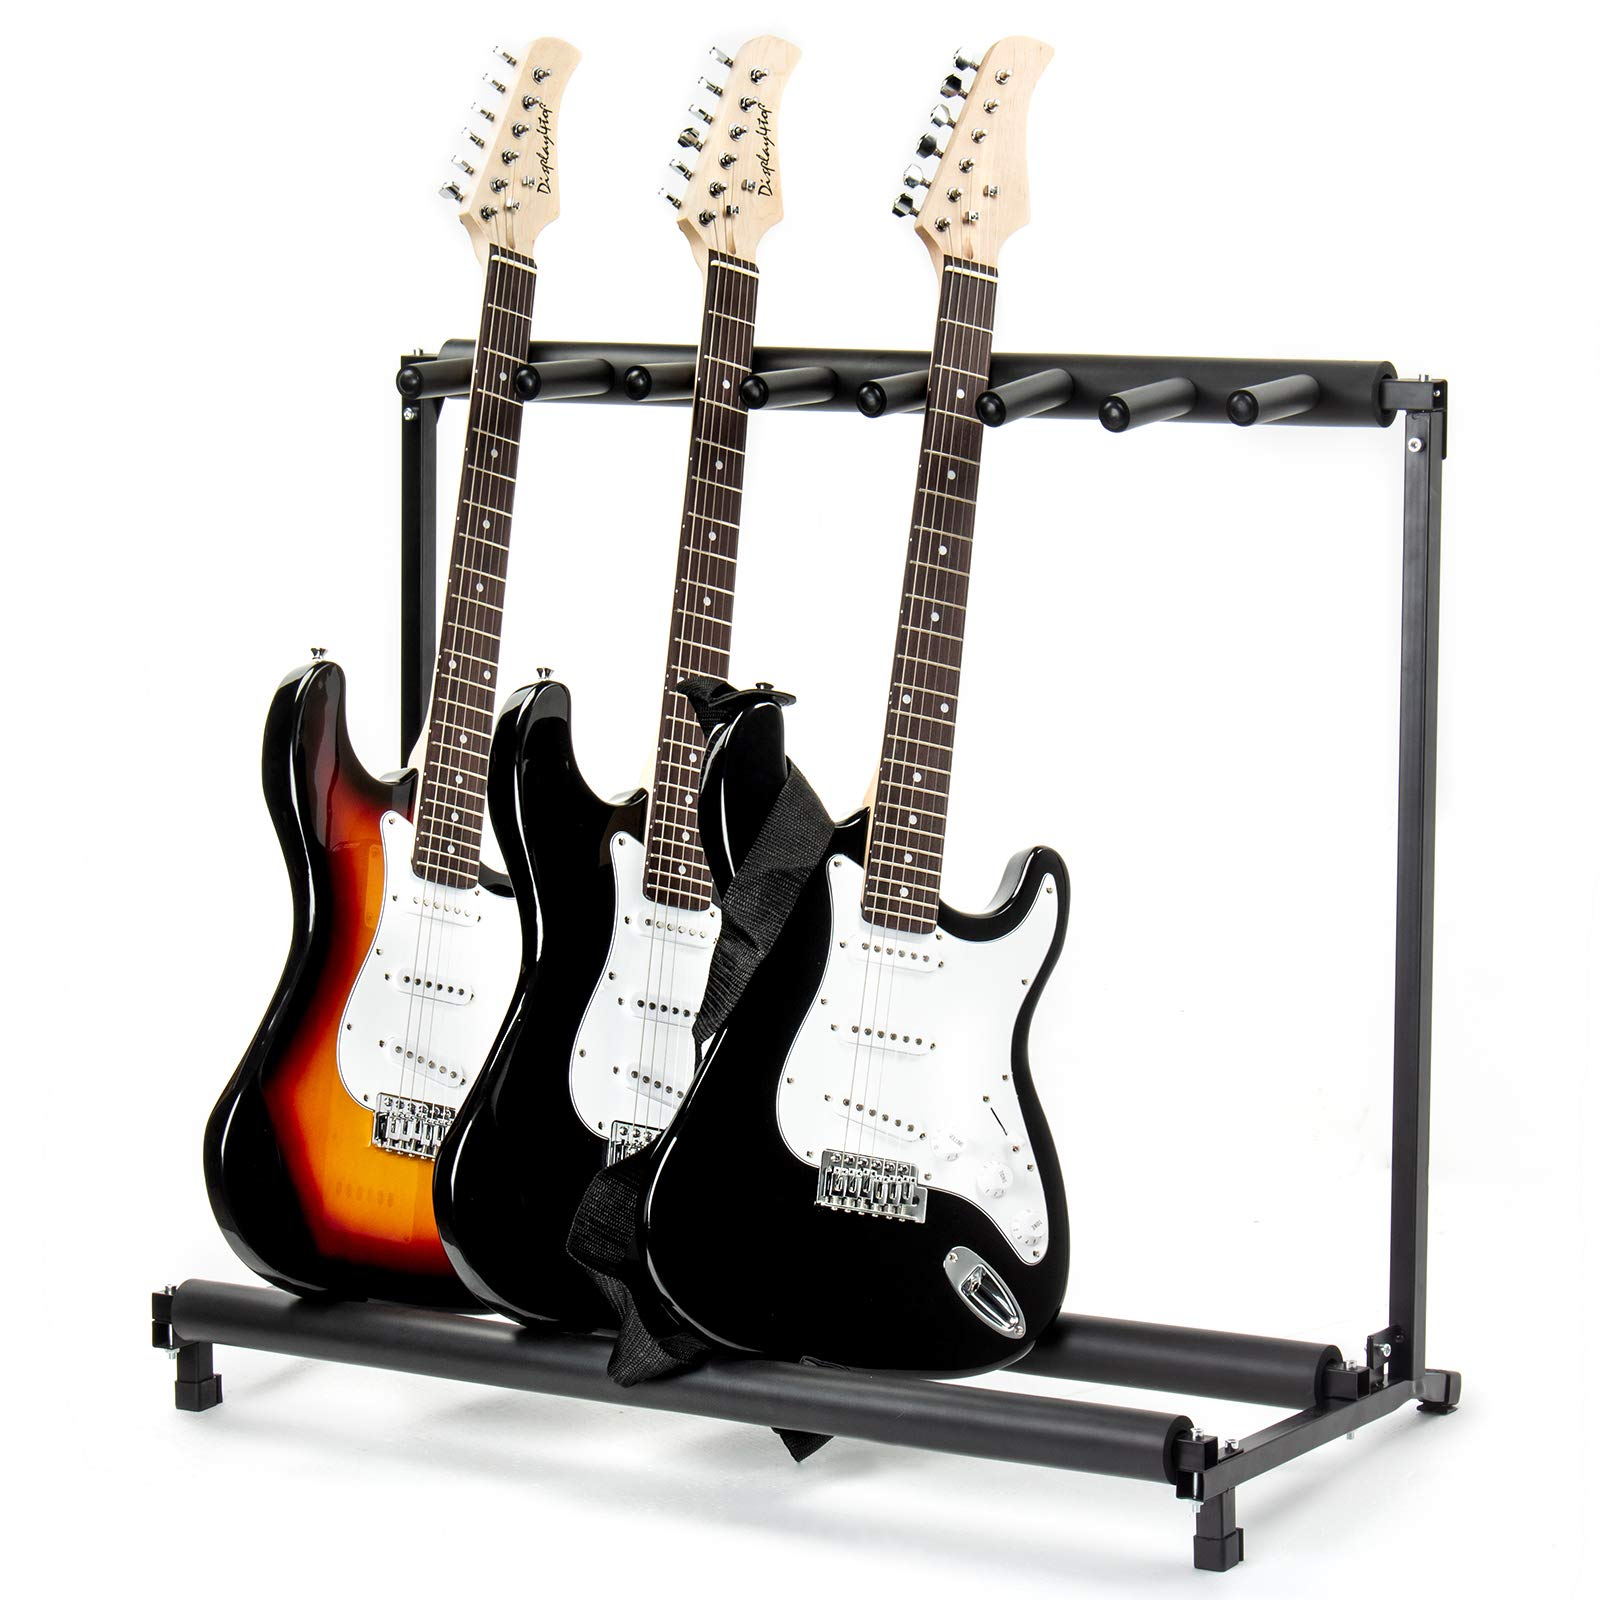 AJO Multi Guitar Stand,7 Holder Guitar Folding Portable Storage Organization Stand Display Rack,Black